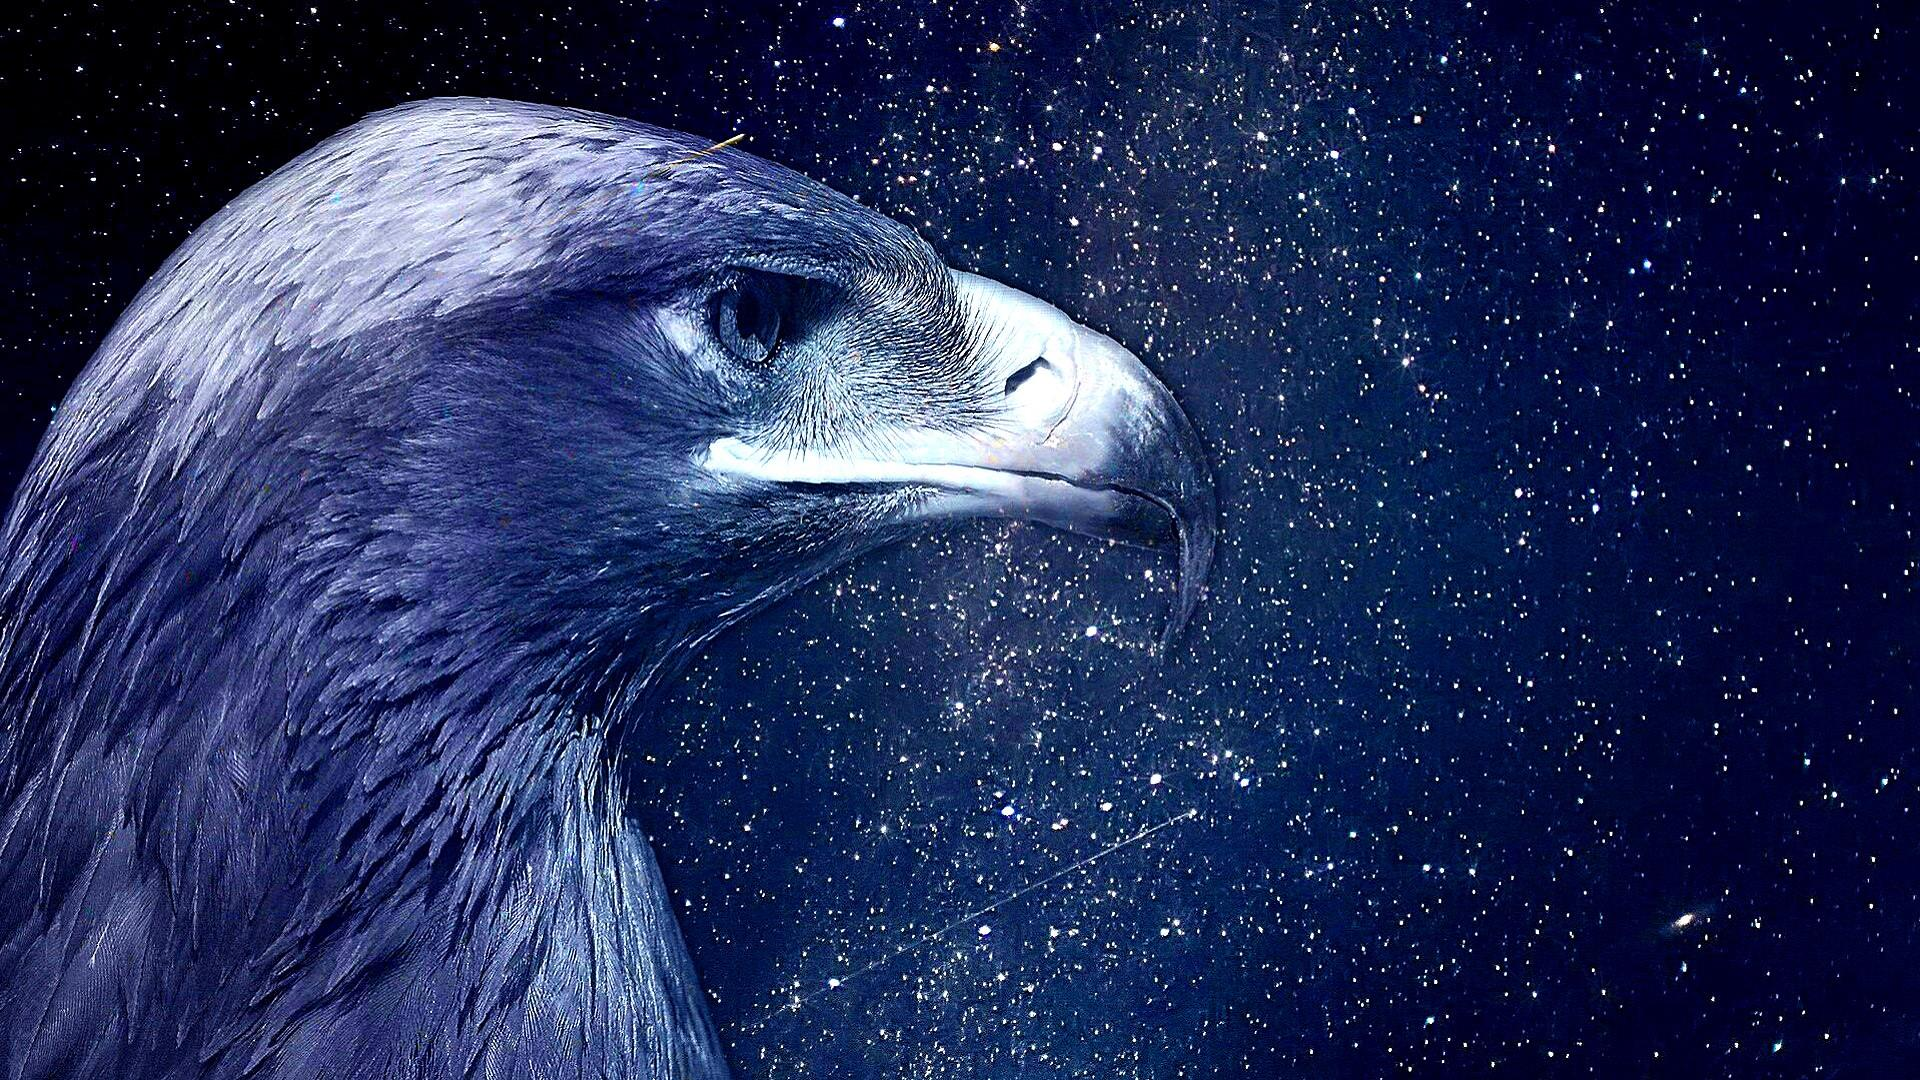 2560x1600 HD Eagle Wallpapers